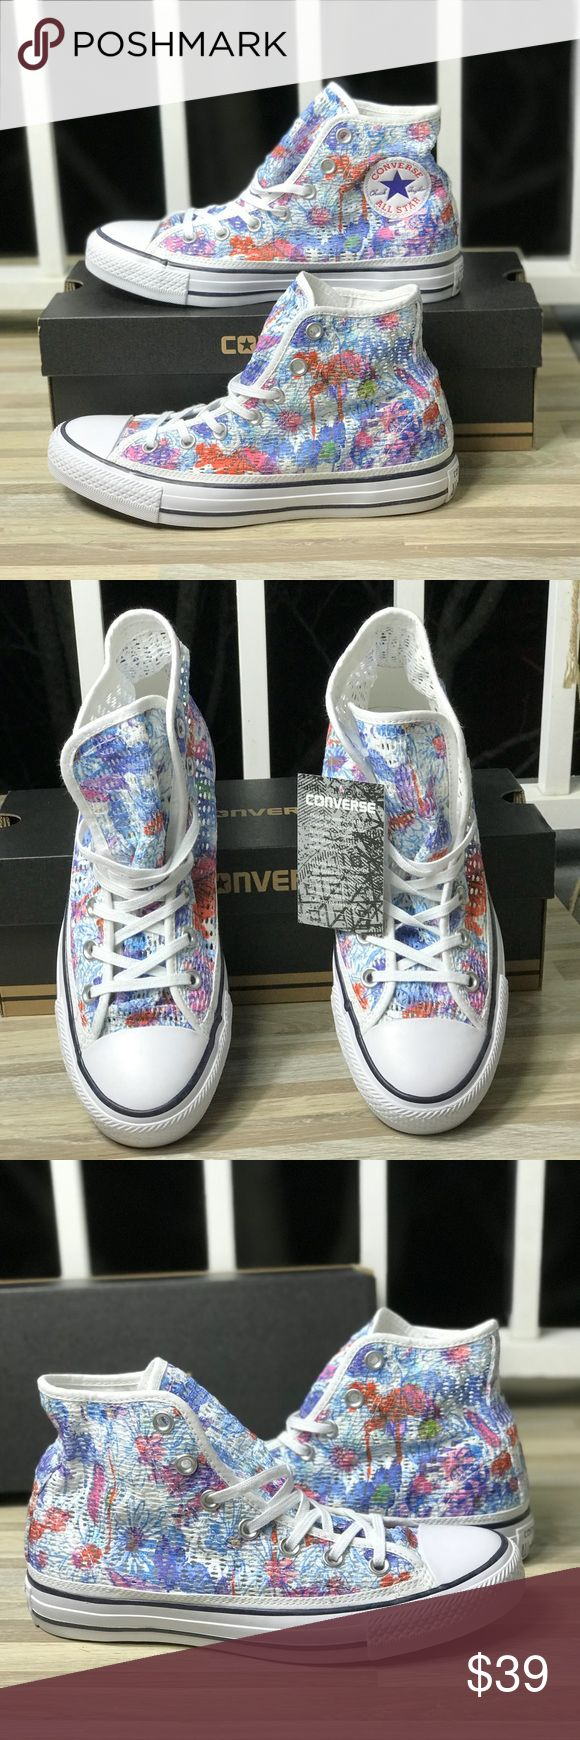 NWT Converse Ctas HI Spray Paint Blue HT WMNS Brand new with box.🔥Price is firm!🔥No trades. Classic cotton construction with a vulcanized rubber midsole for comfort and durability. Converse Shoes Sneakers